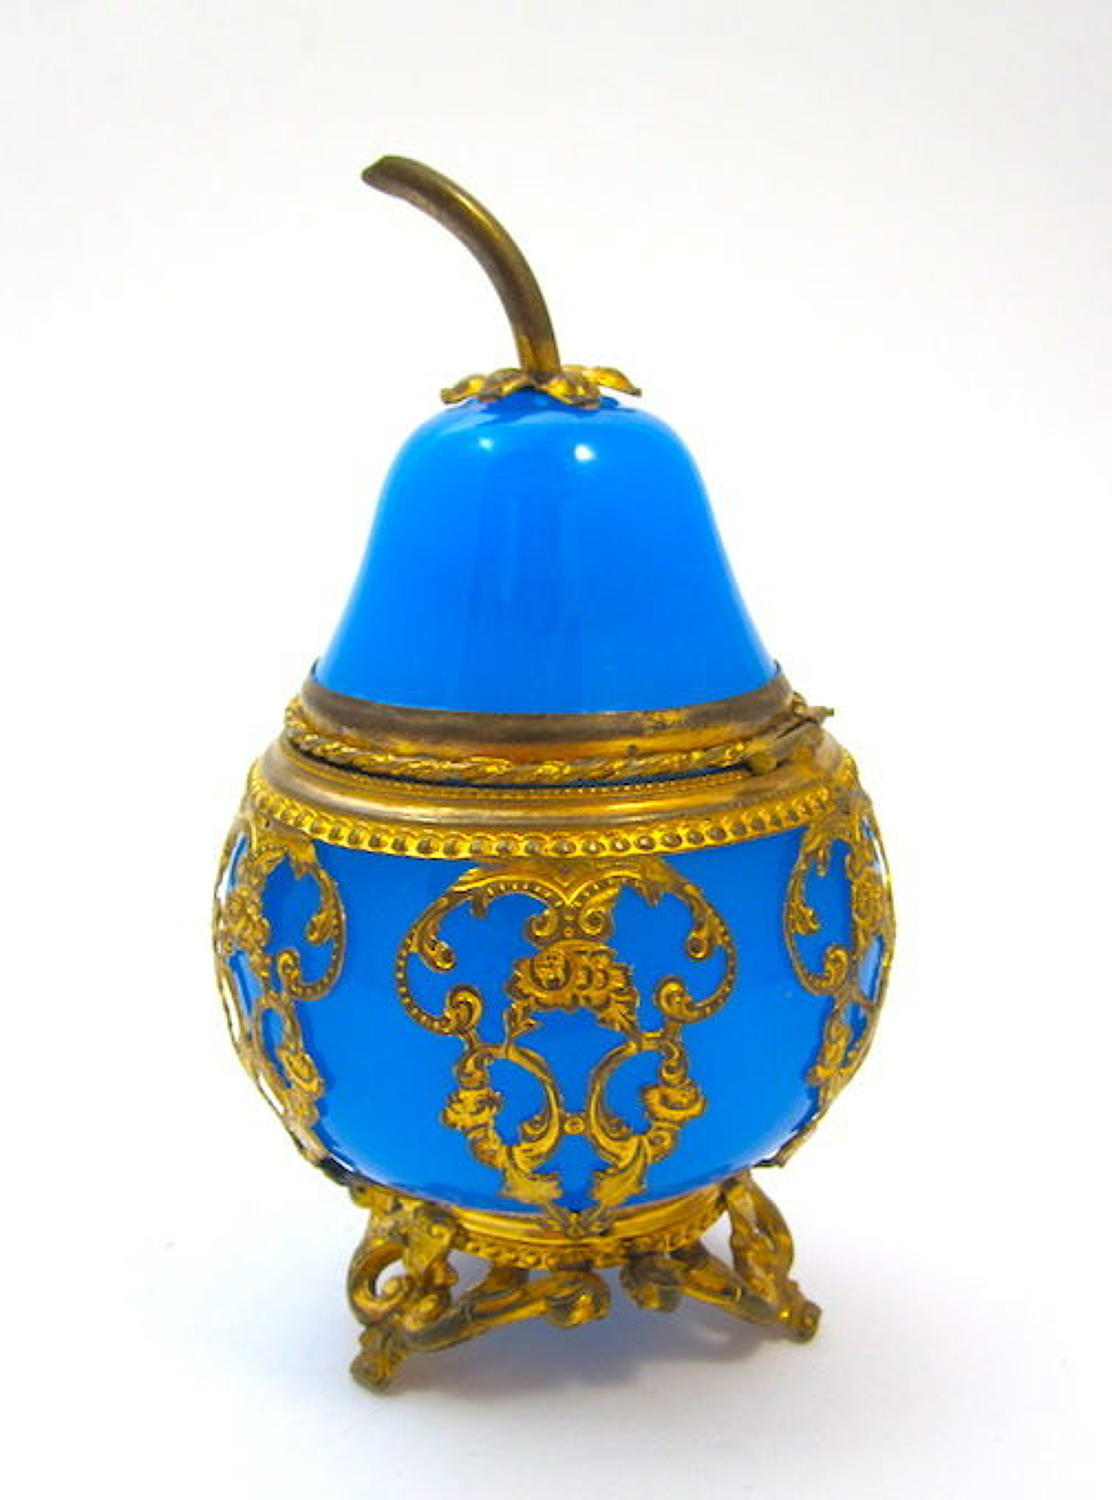 Rare Antique Palais Royal Blue Opaline Glass Pear-Shaped Casket Box.